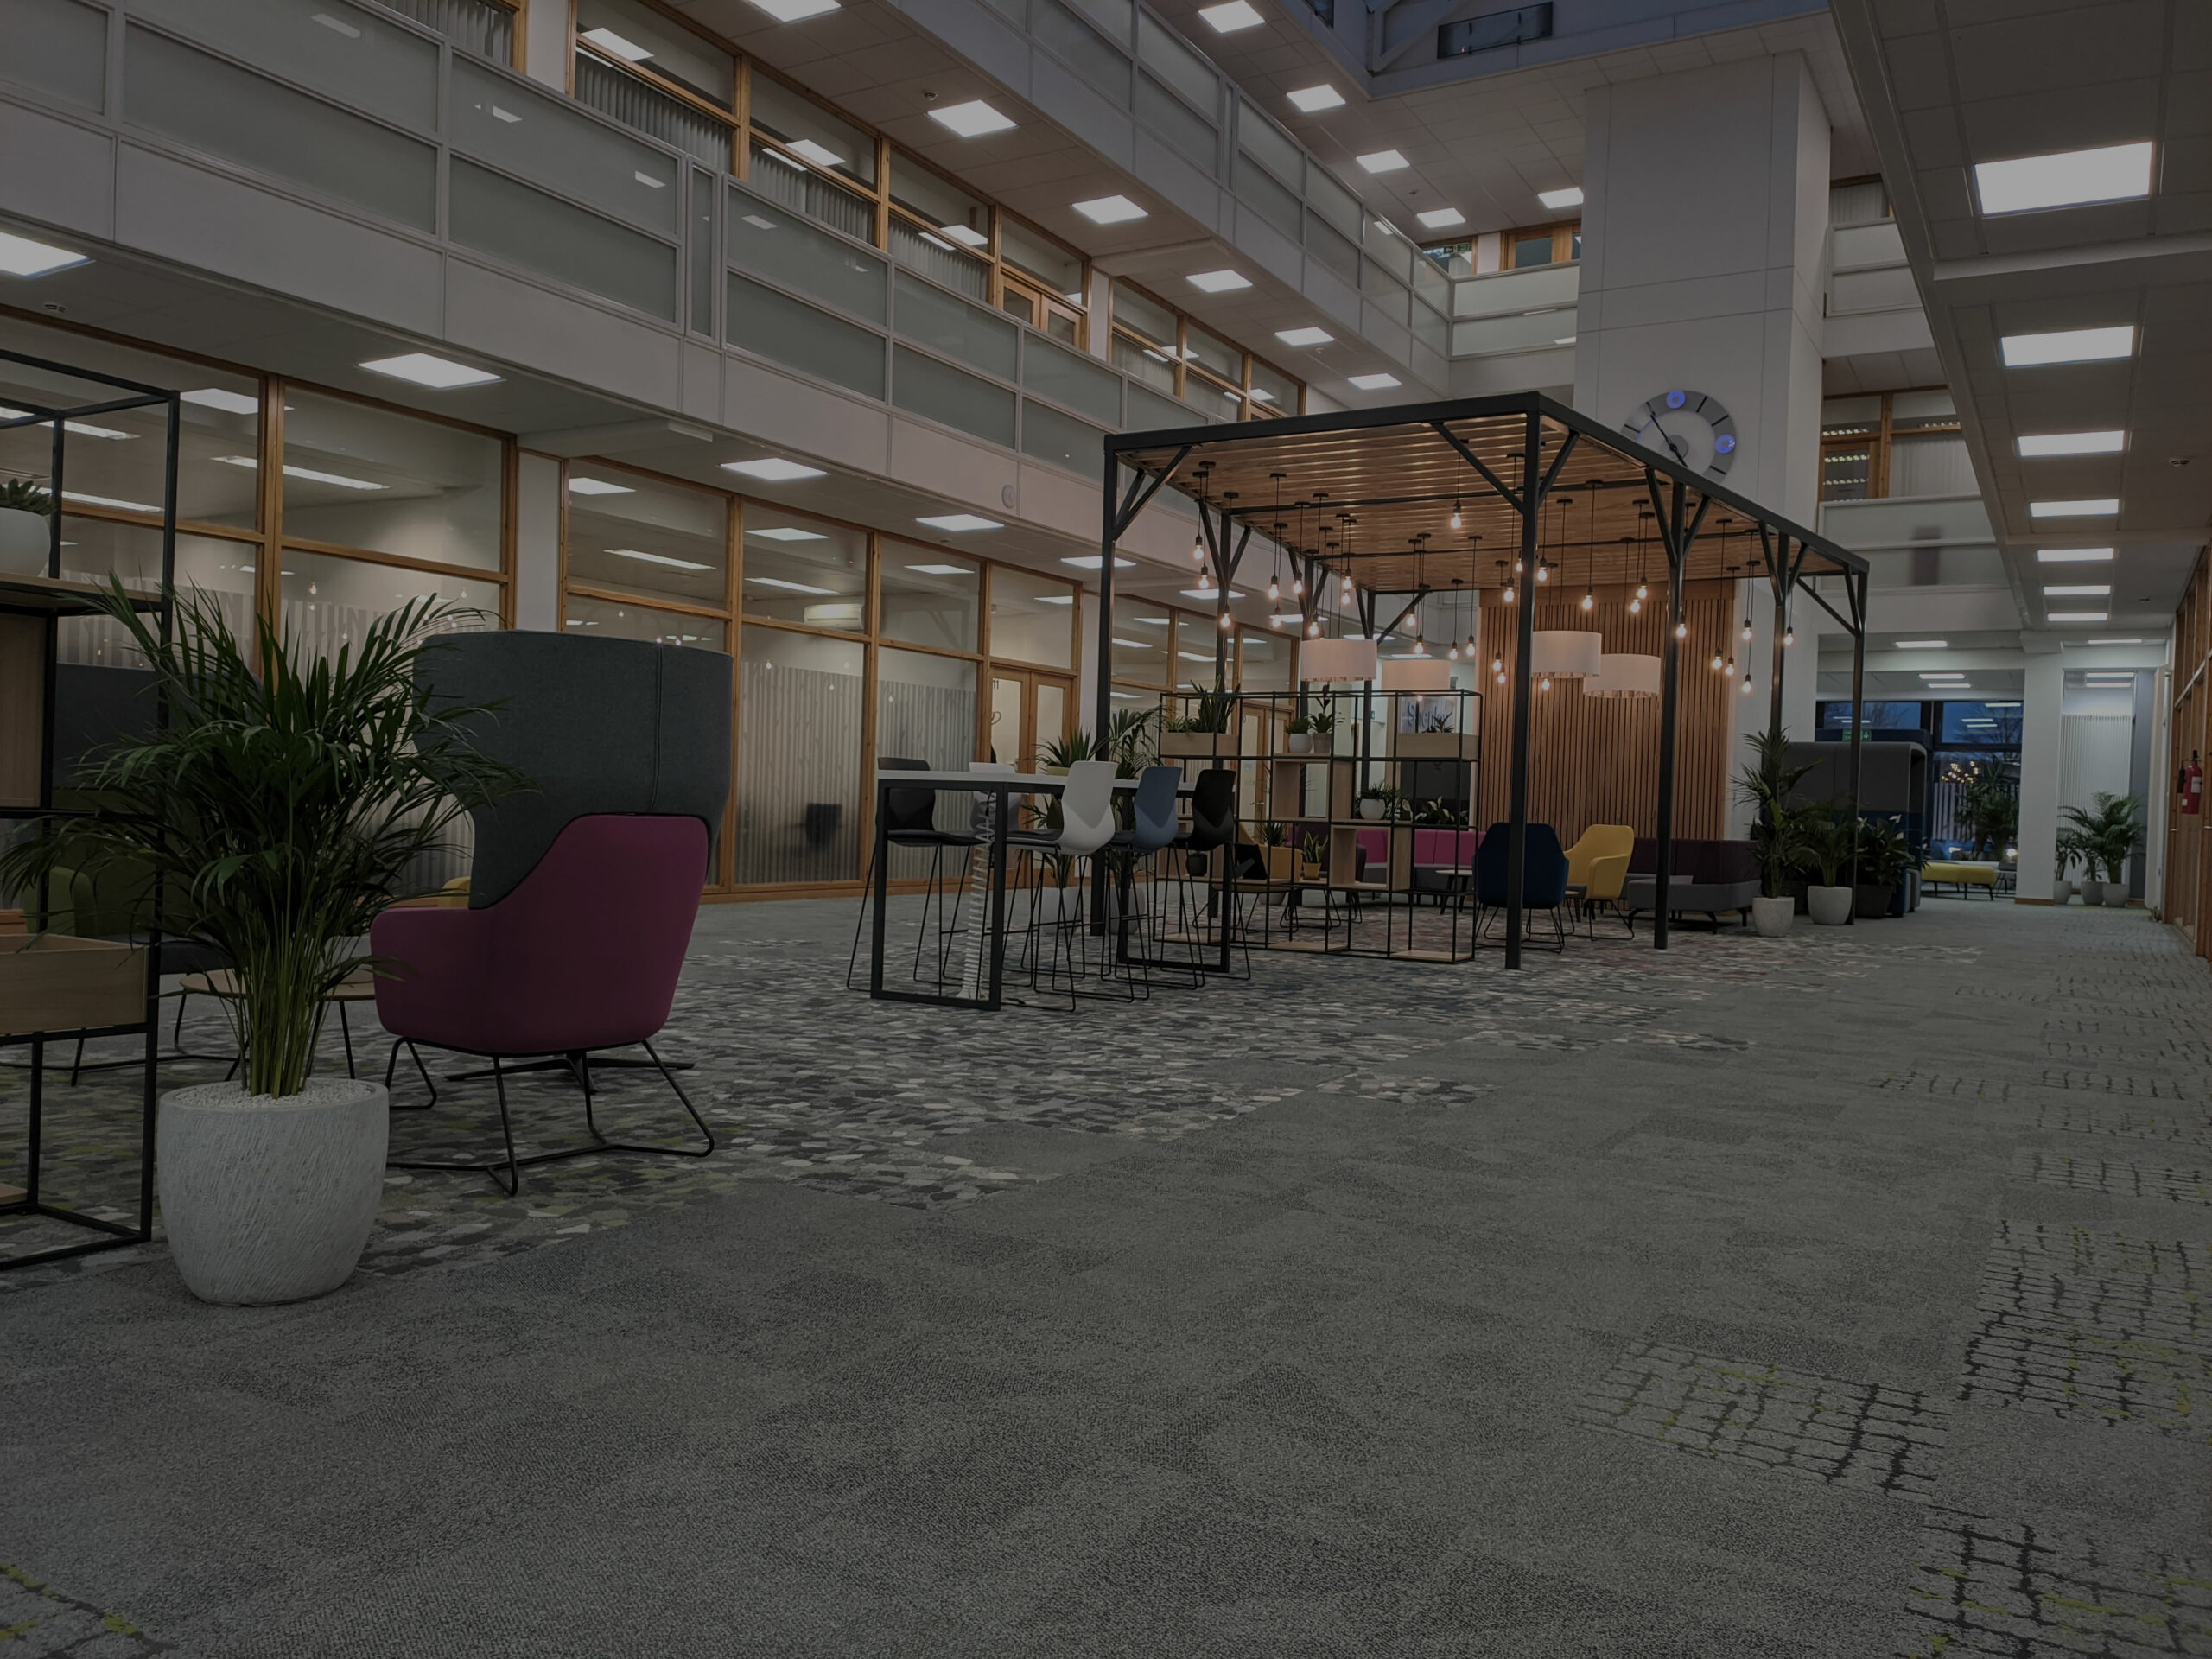 atrium in centre of large office block. Timber and metal structure with suspended lighting and colourful chairs